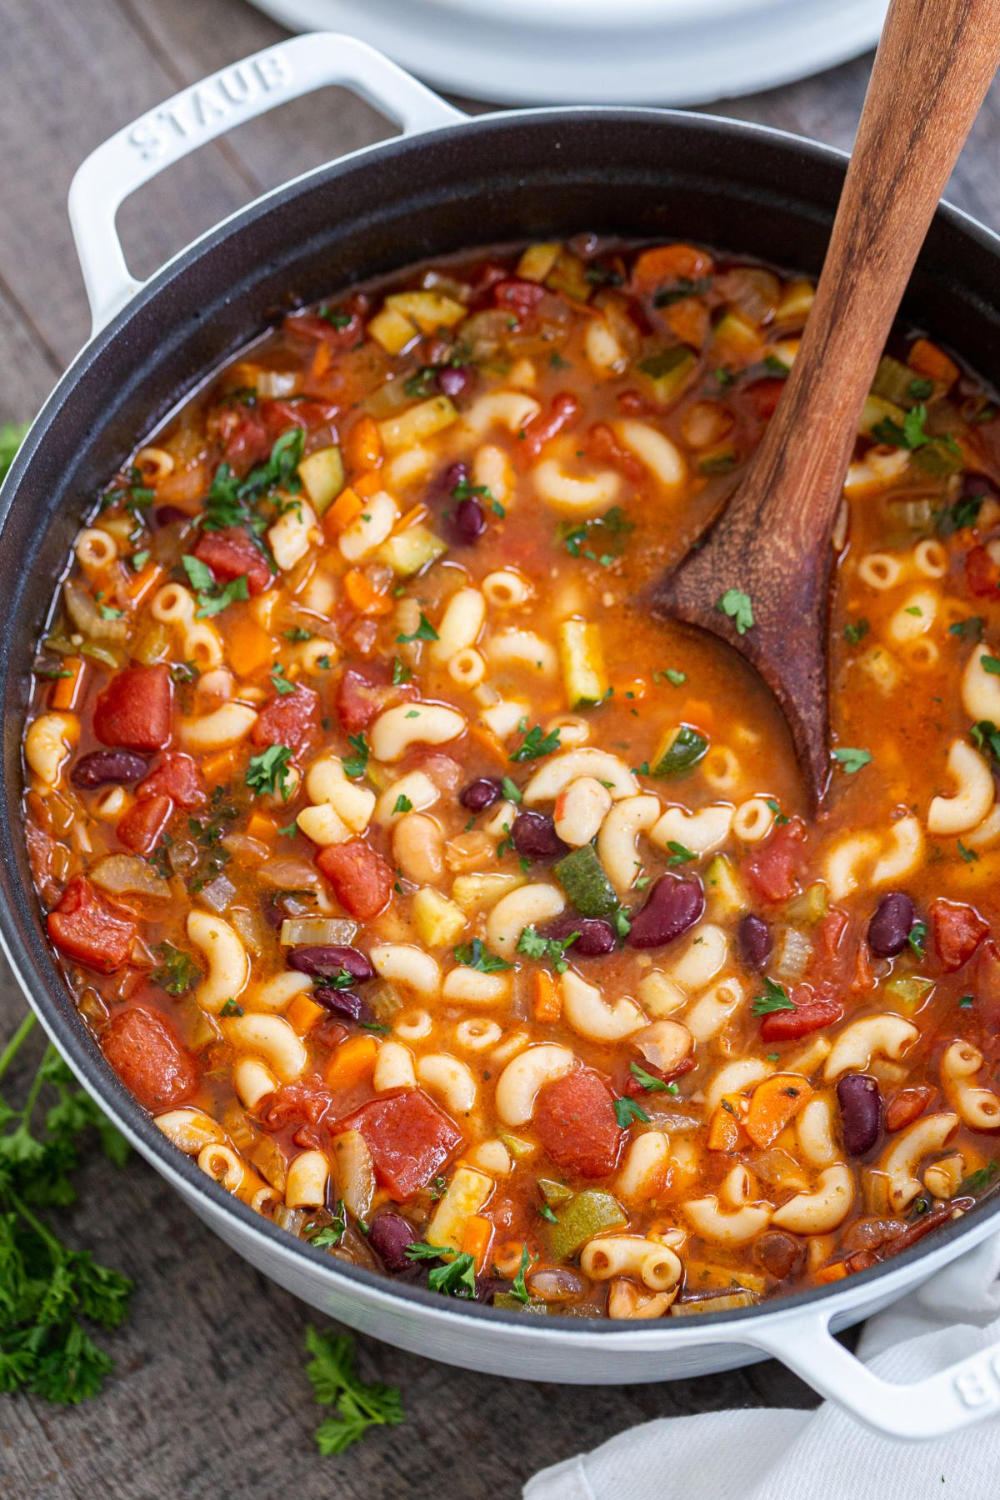 Minestrone soup is so hearty it can stand on its own as